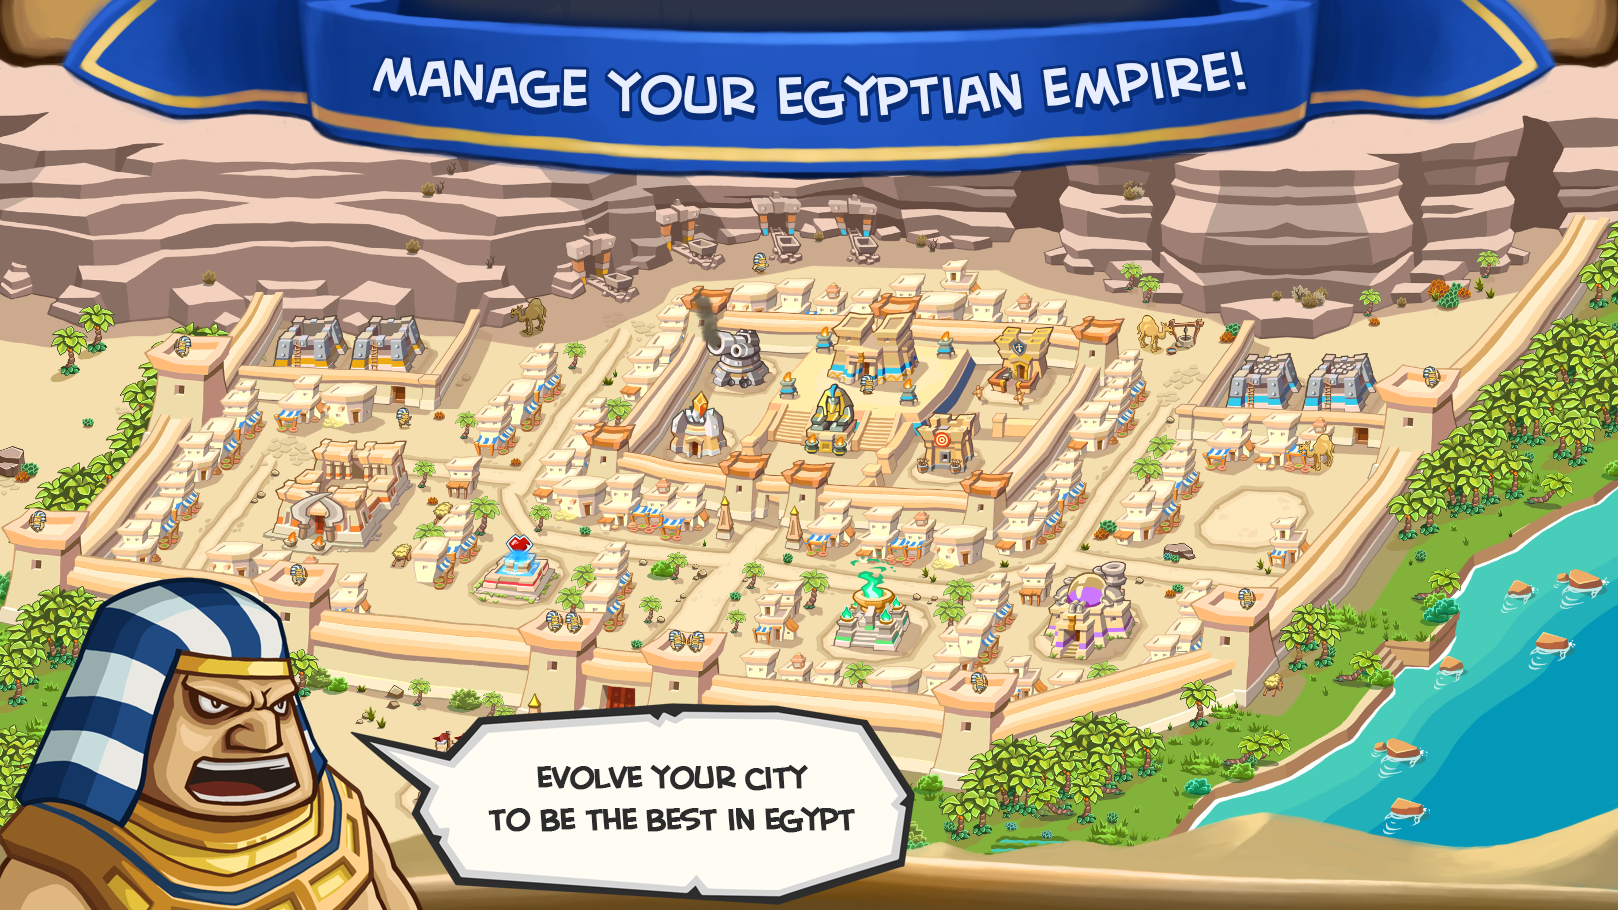 Empires of Sand - Manage your egyptian empire